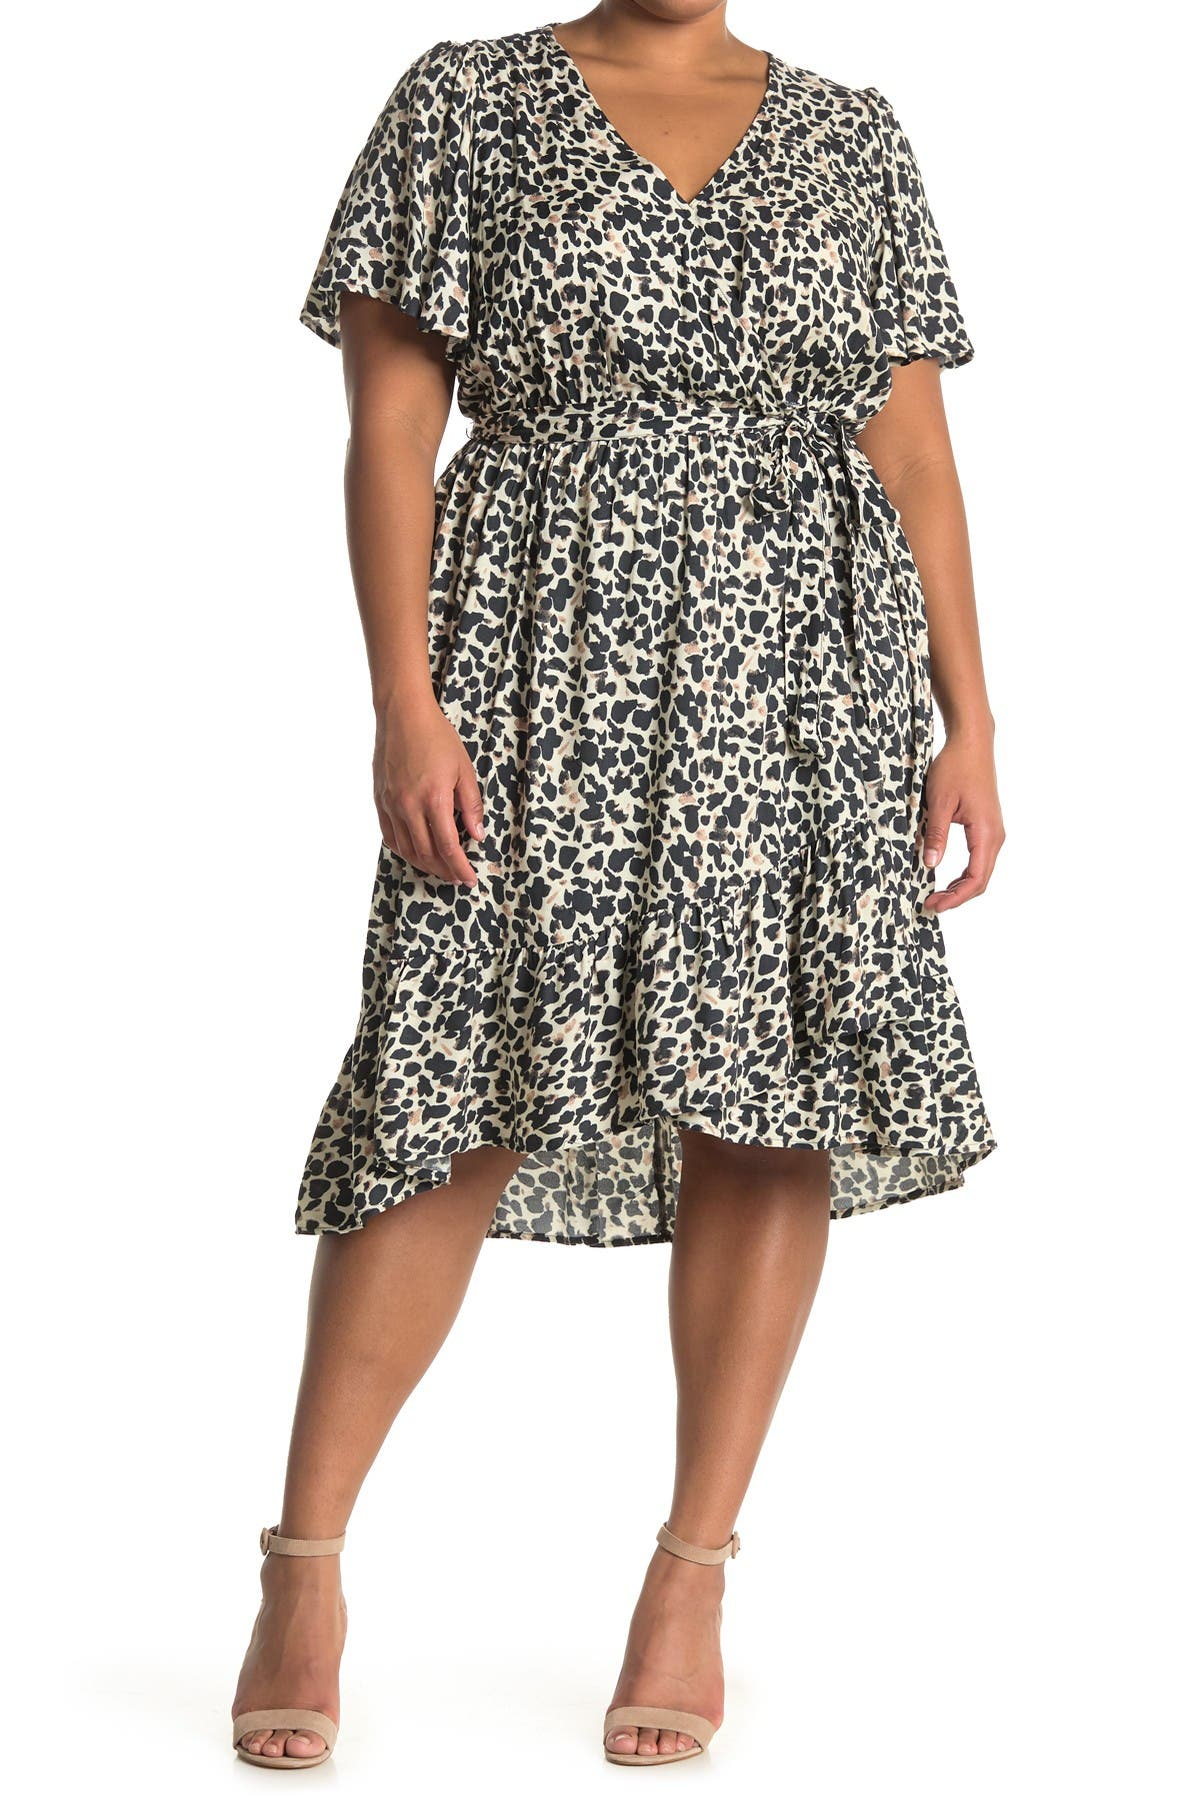 Image of 14TH PLACE Ruffled Wrap Dress